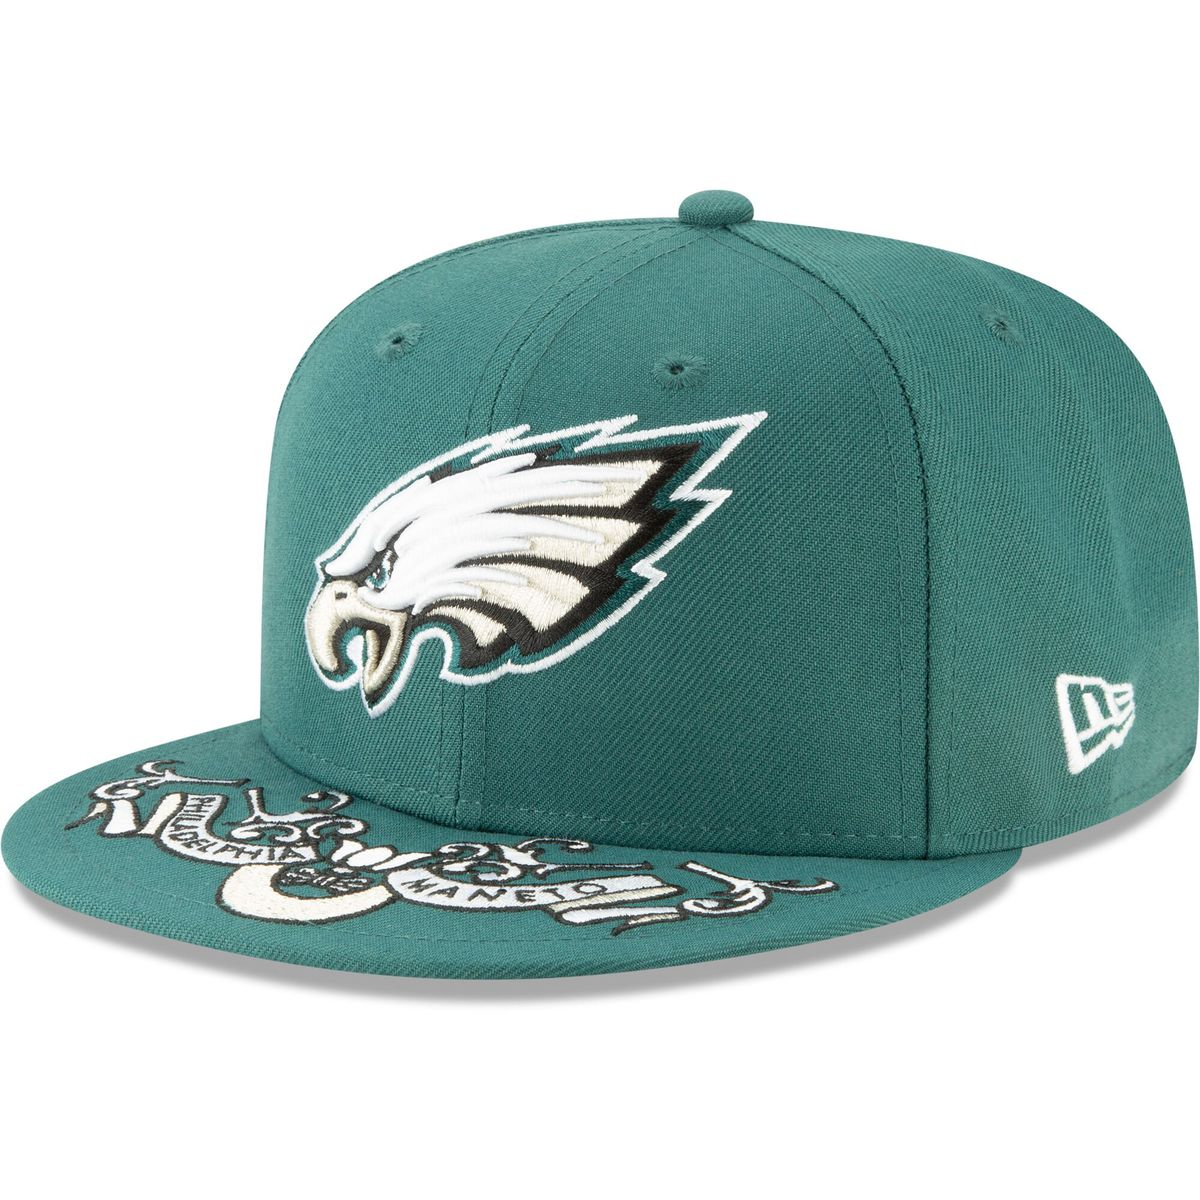 e00e048e1b9f3 Eagles 2019 NFL Draft hats are here - Bleeding Green Nation